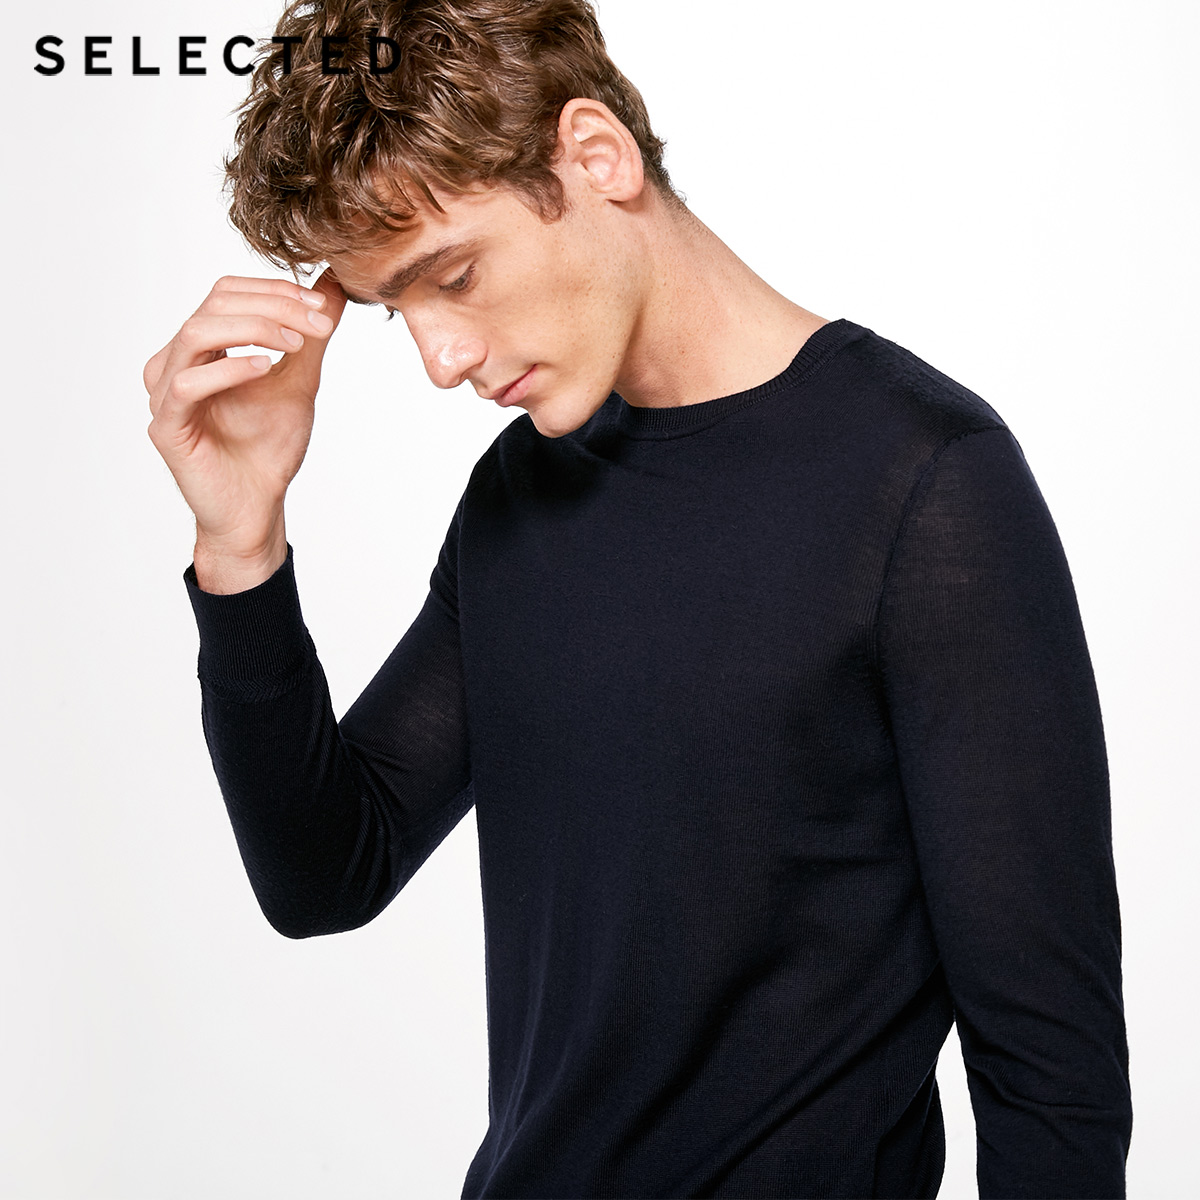 SELECTED Pure Wool Italy Merino V Collar Men Lightweight Knitwear Sweater S|418424501(China)